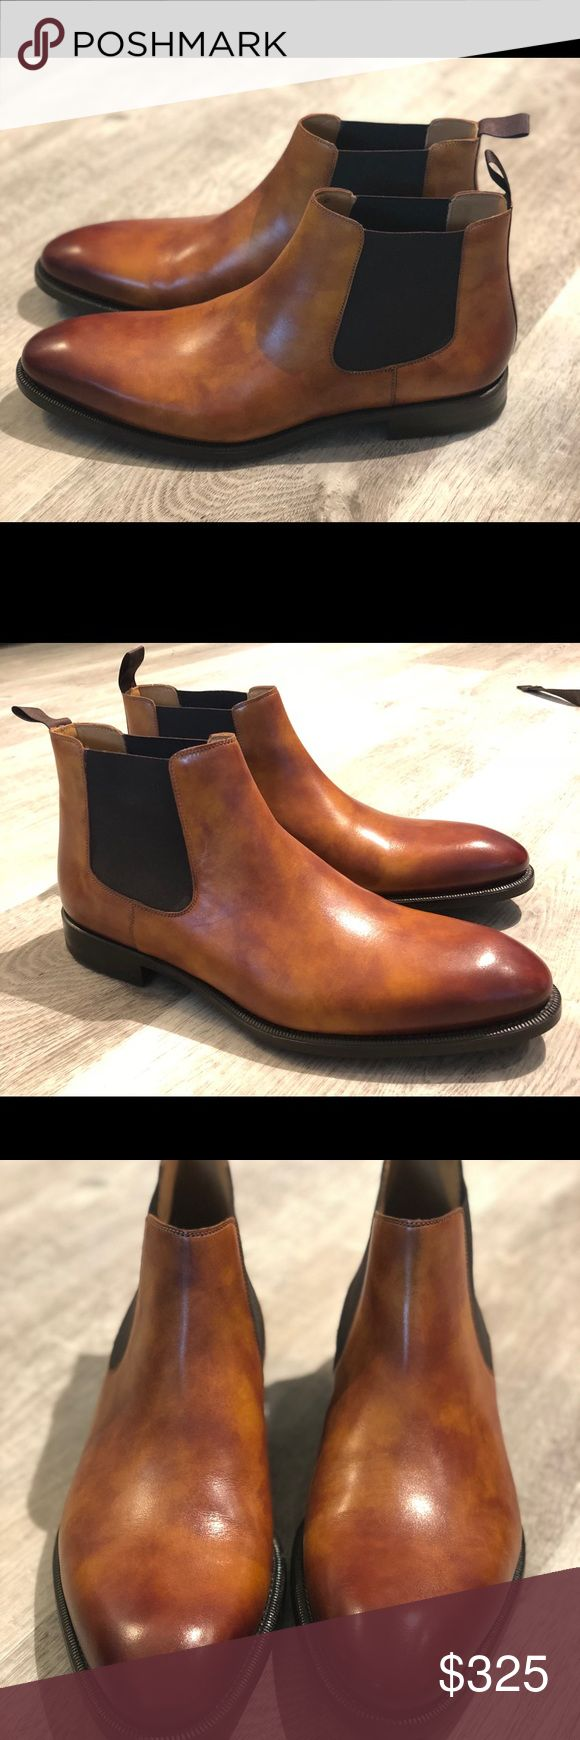 Magnani Chelsea Boots Brand new beautiful Magnani shoes. High quality Italian sh...